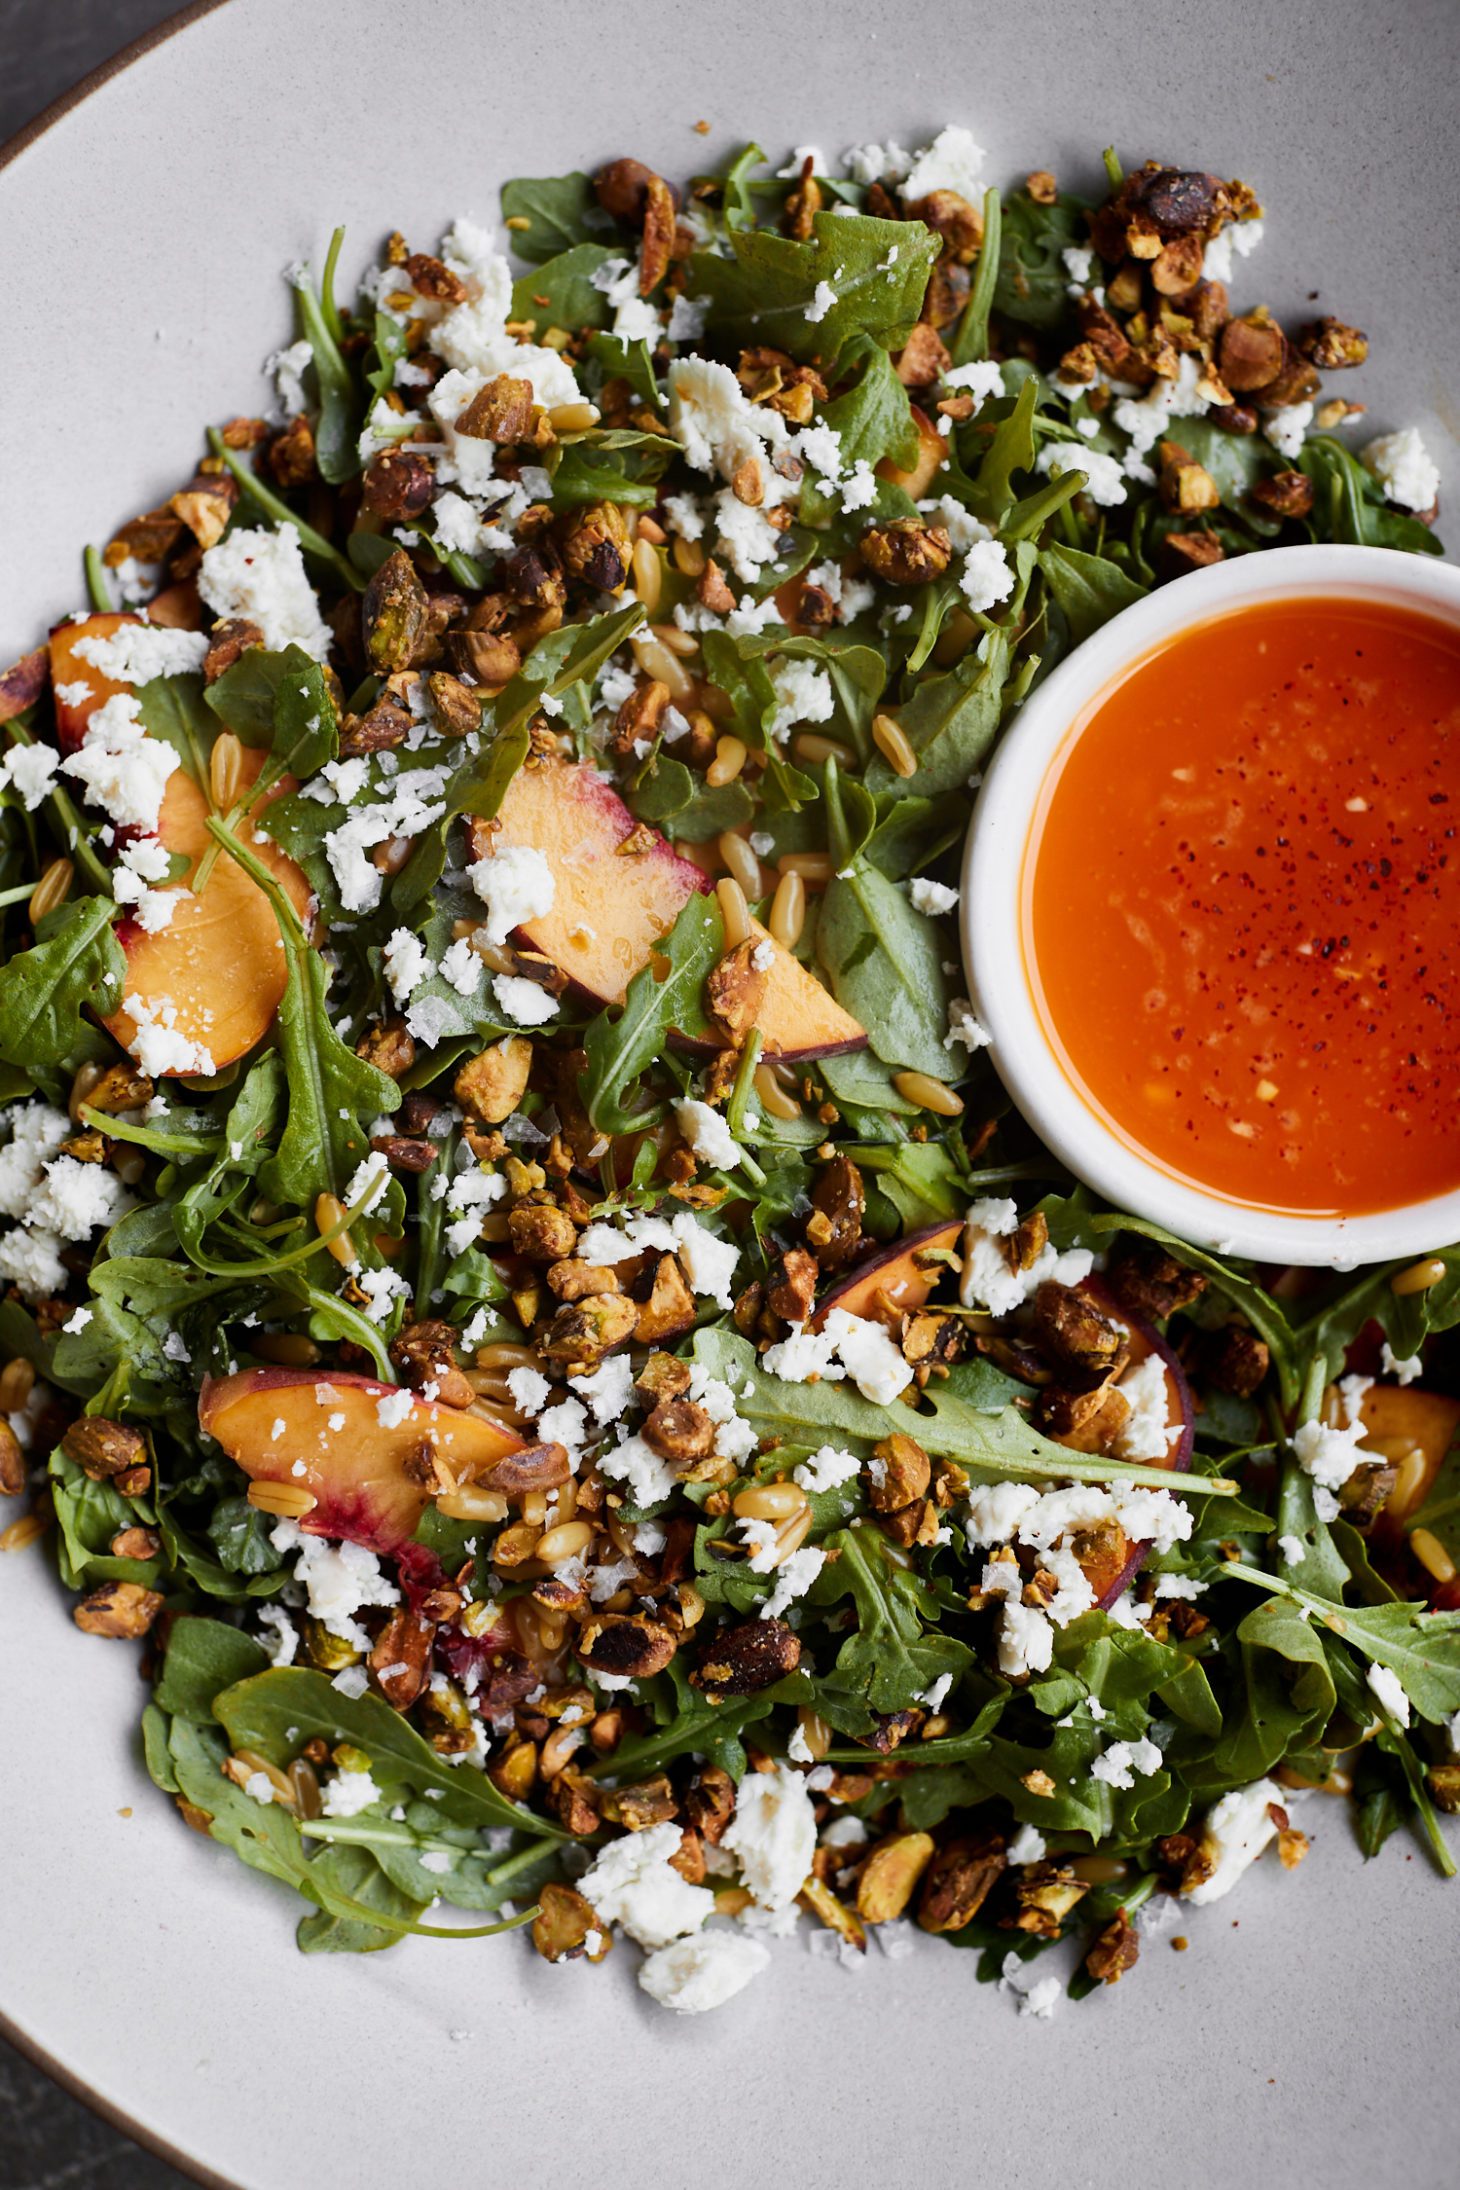 Close-up photo of a salad with peaches, pistachios, a chili dressing- all in a grey bowl.